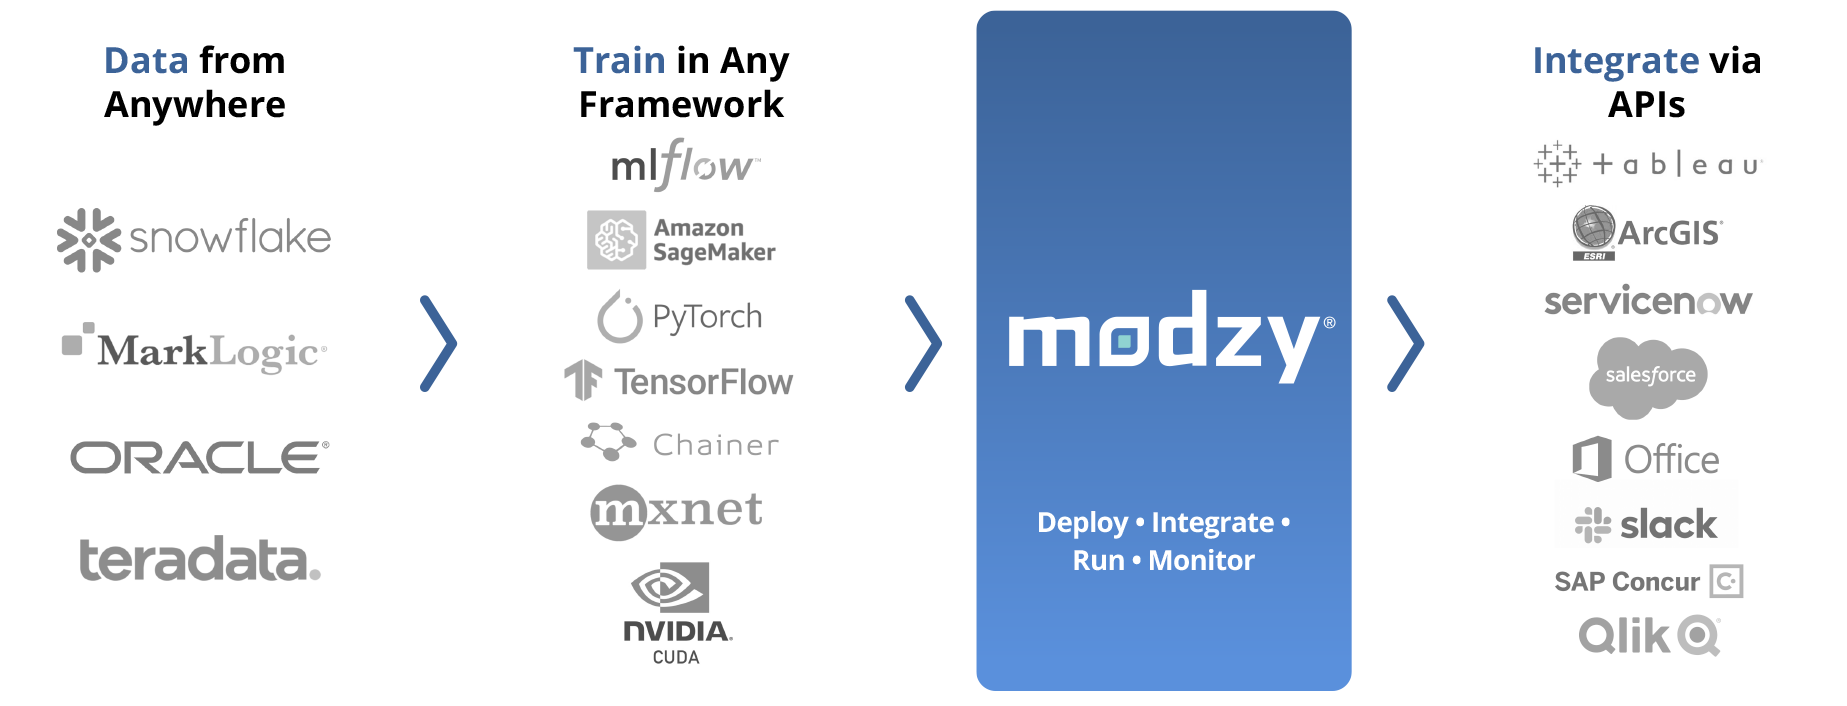 Modzy ModelOps platform handles all the AI deployment, monitoring, governance and continuous improvement of models in your organization